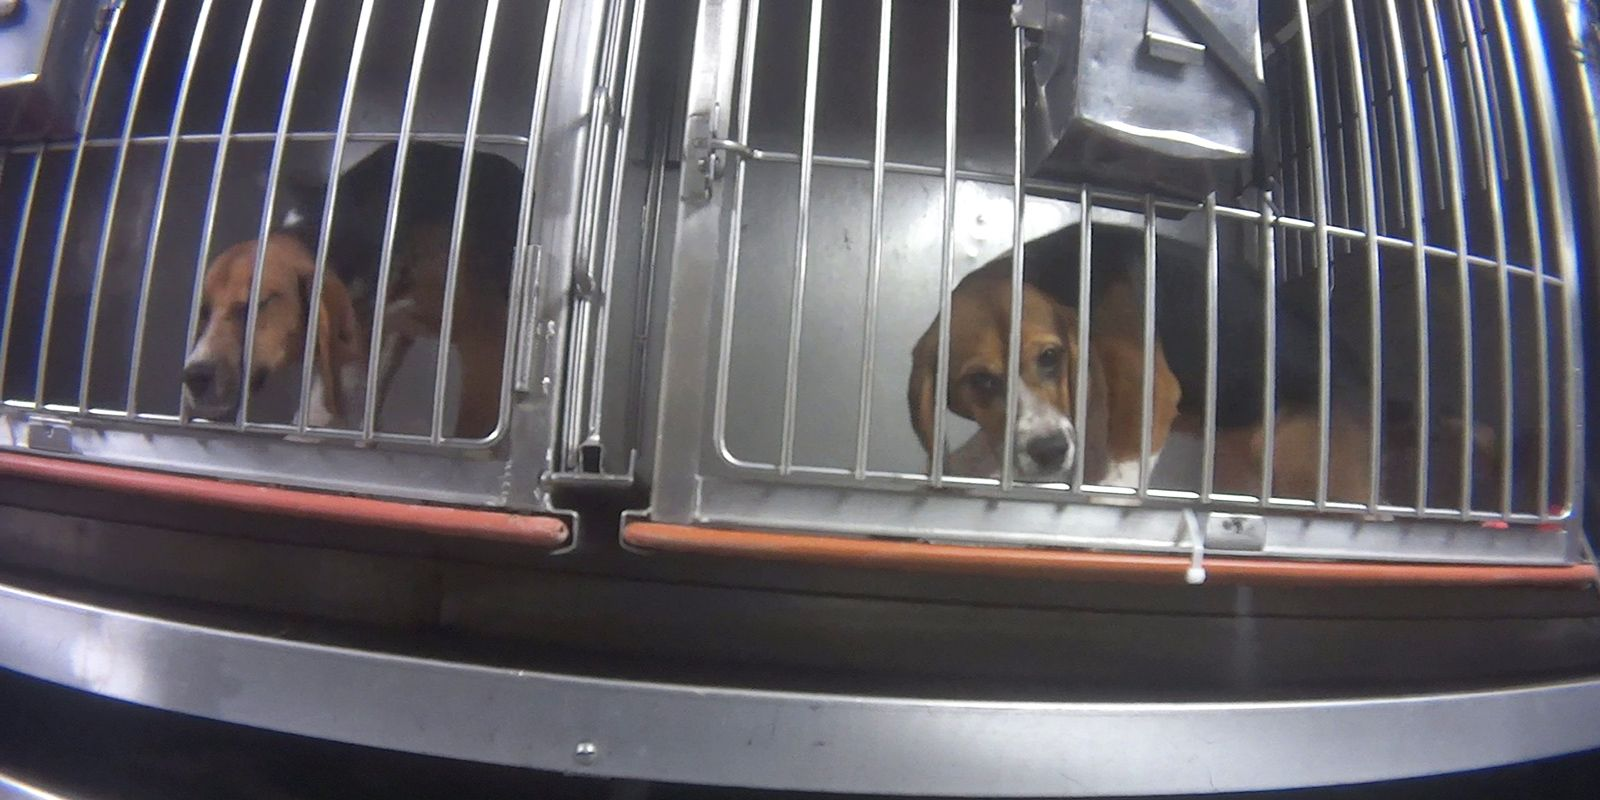 Humane Society Petition Goes Viral After Video Shows Beagles Force